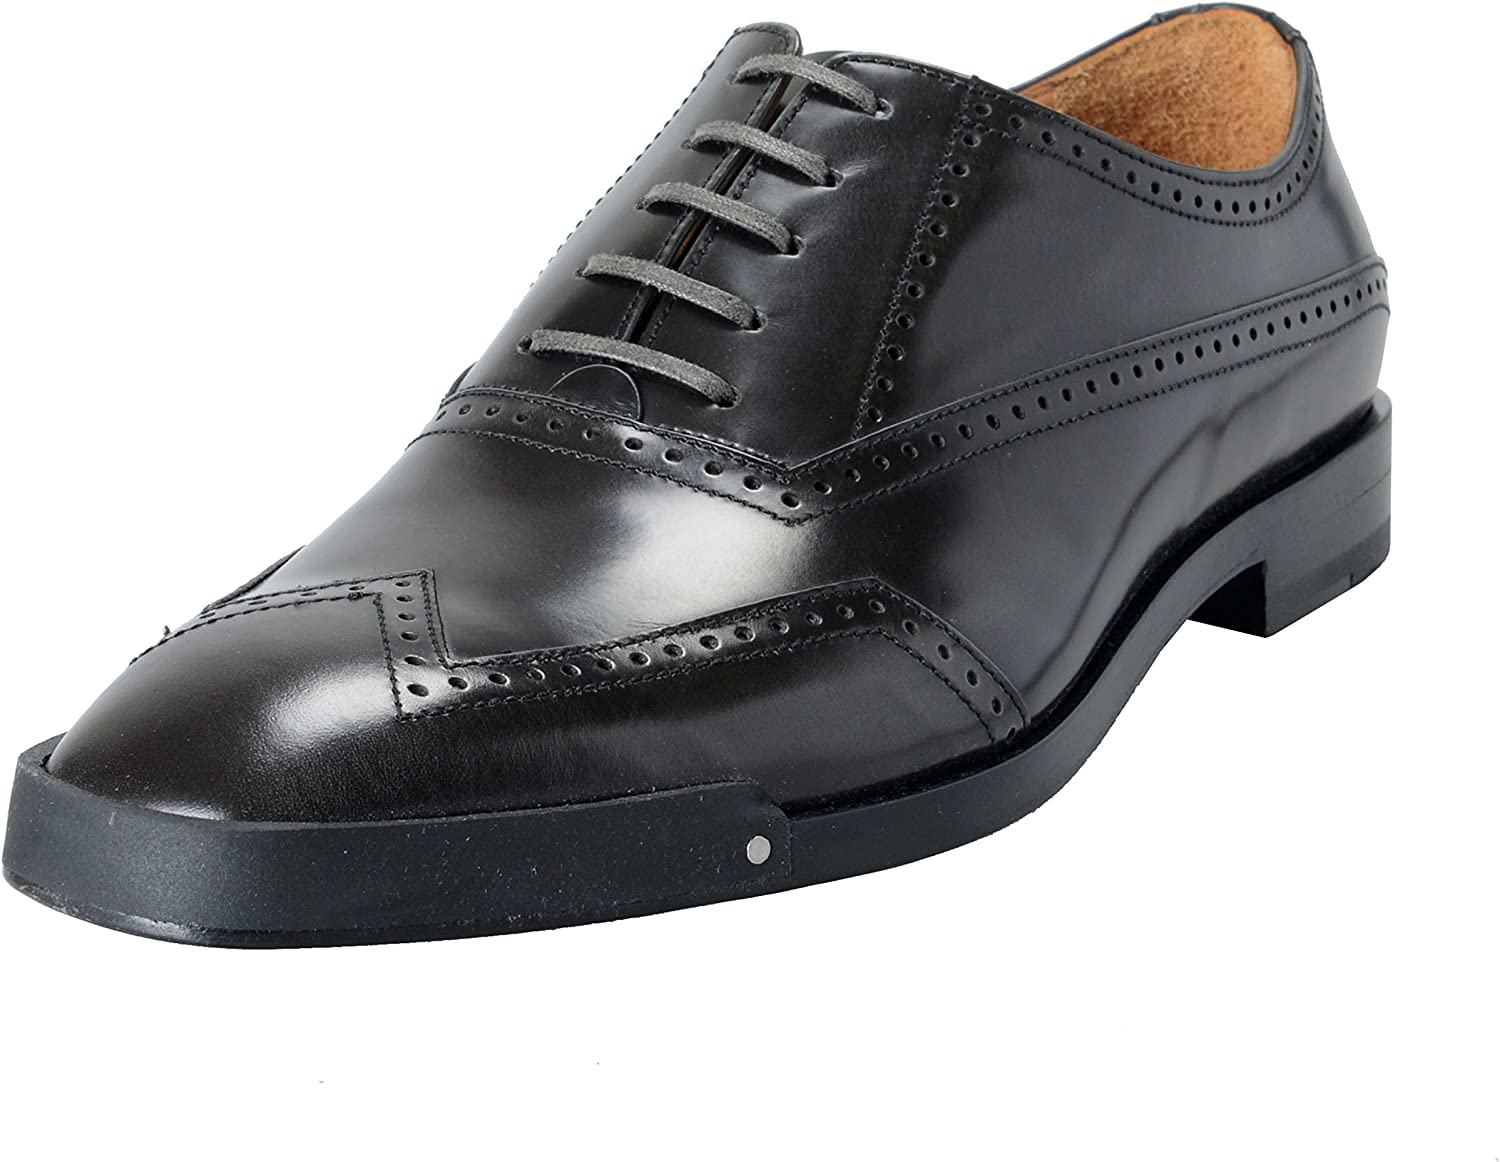 Leather Wingtip Oxford Dress Shoes